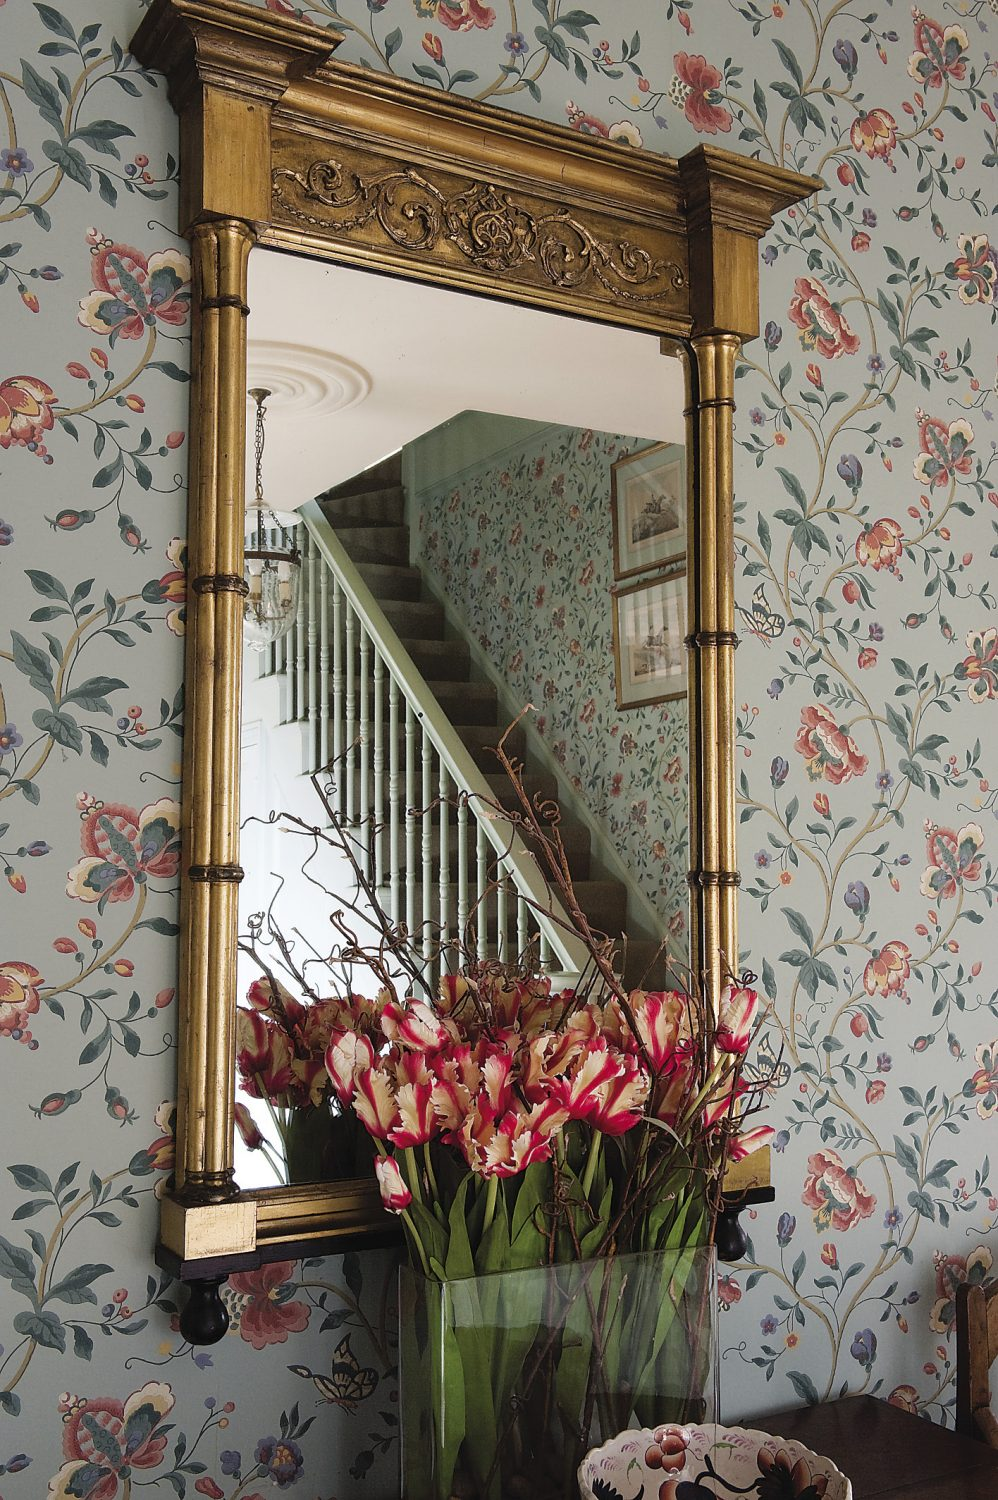 The walls of the hallway are smothered in the flowers and butterflies of an exuberant Nina Campbell wallpaper